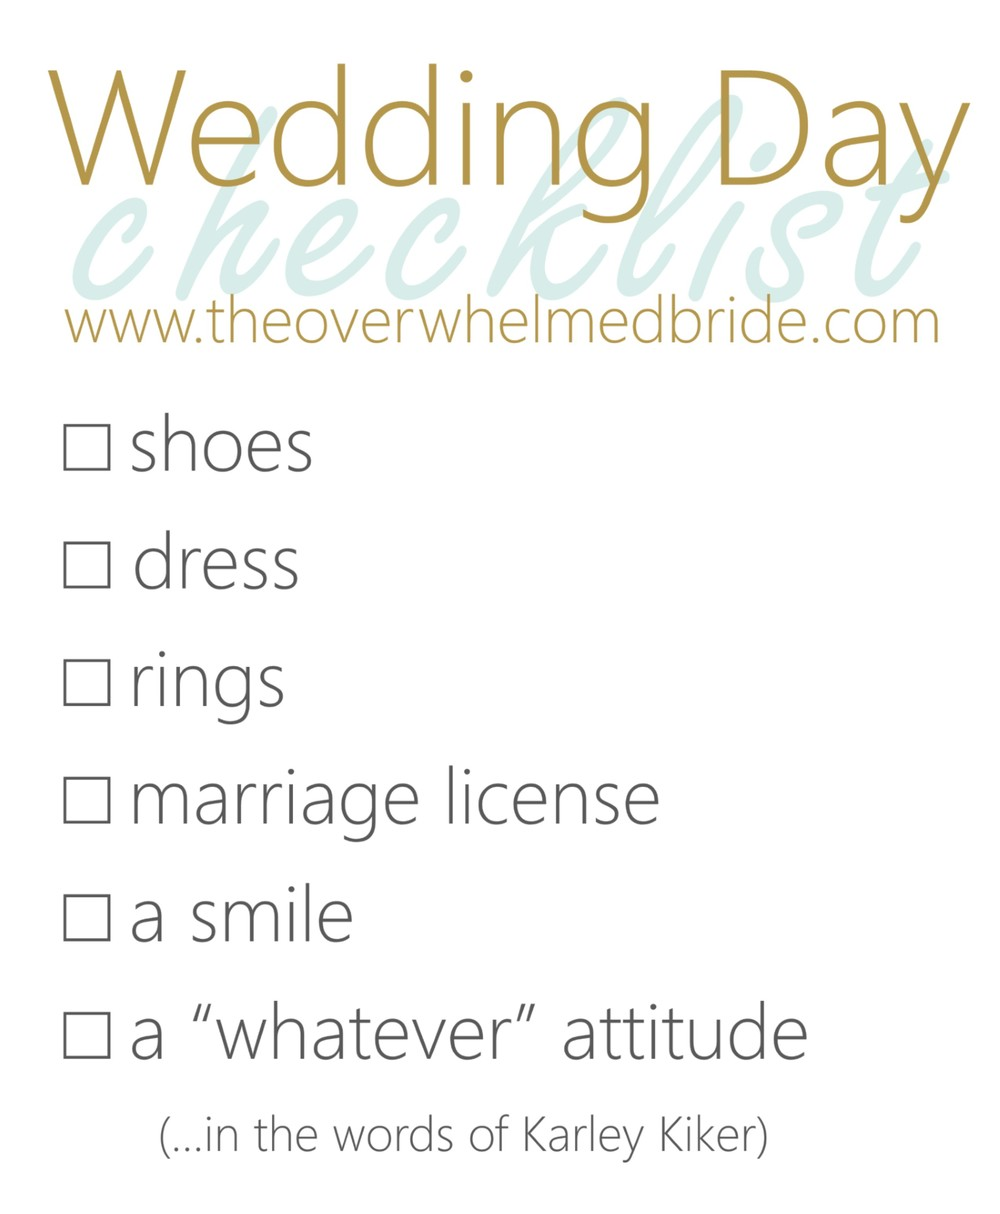 wedding day checklist for the bride